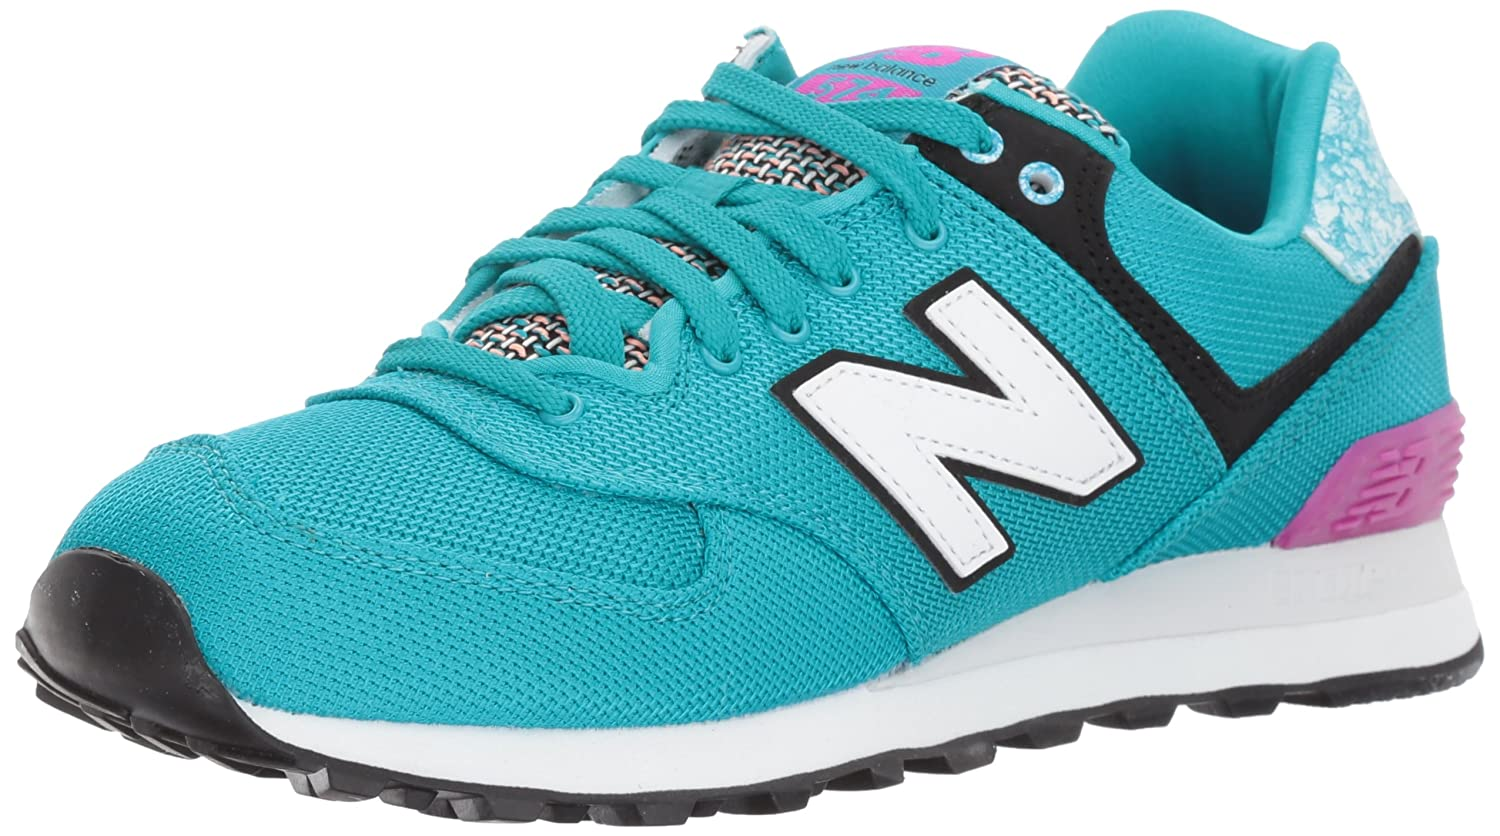 New Balance Women's 574v1 Art School Sneaker B01MQLRY6C 12 D US|Pisces/Poisonberry